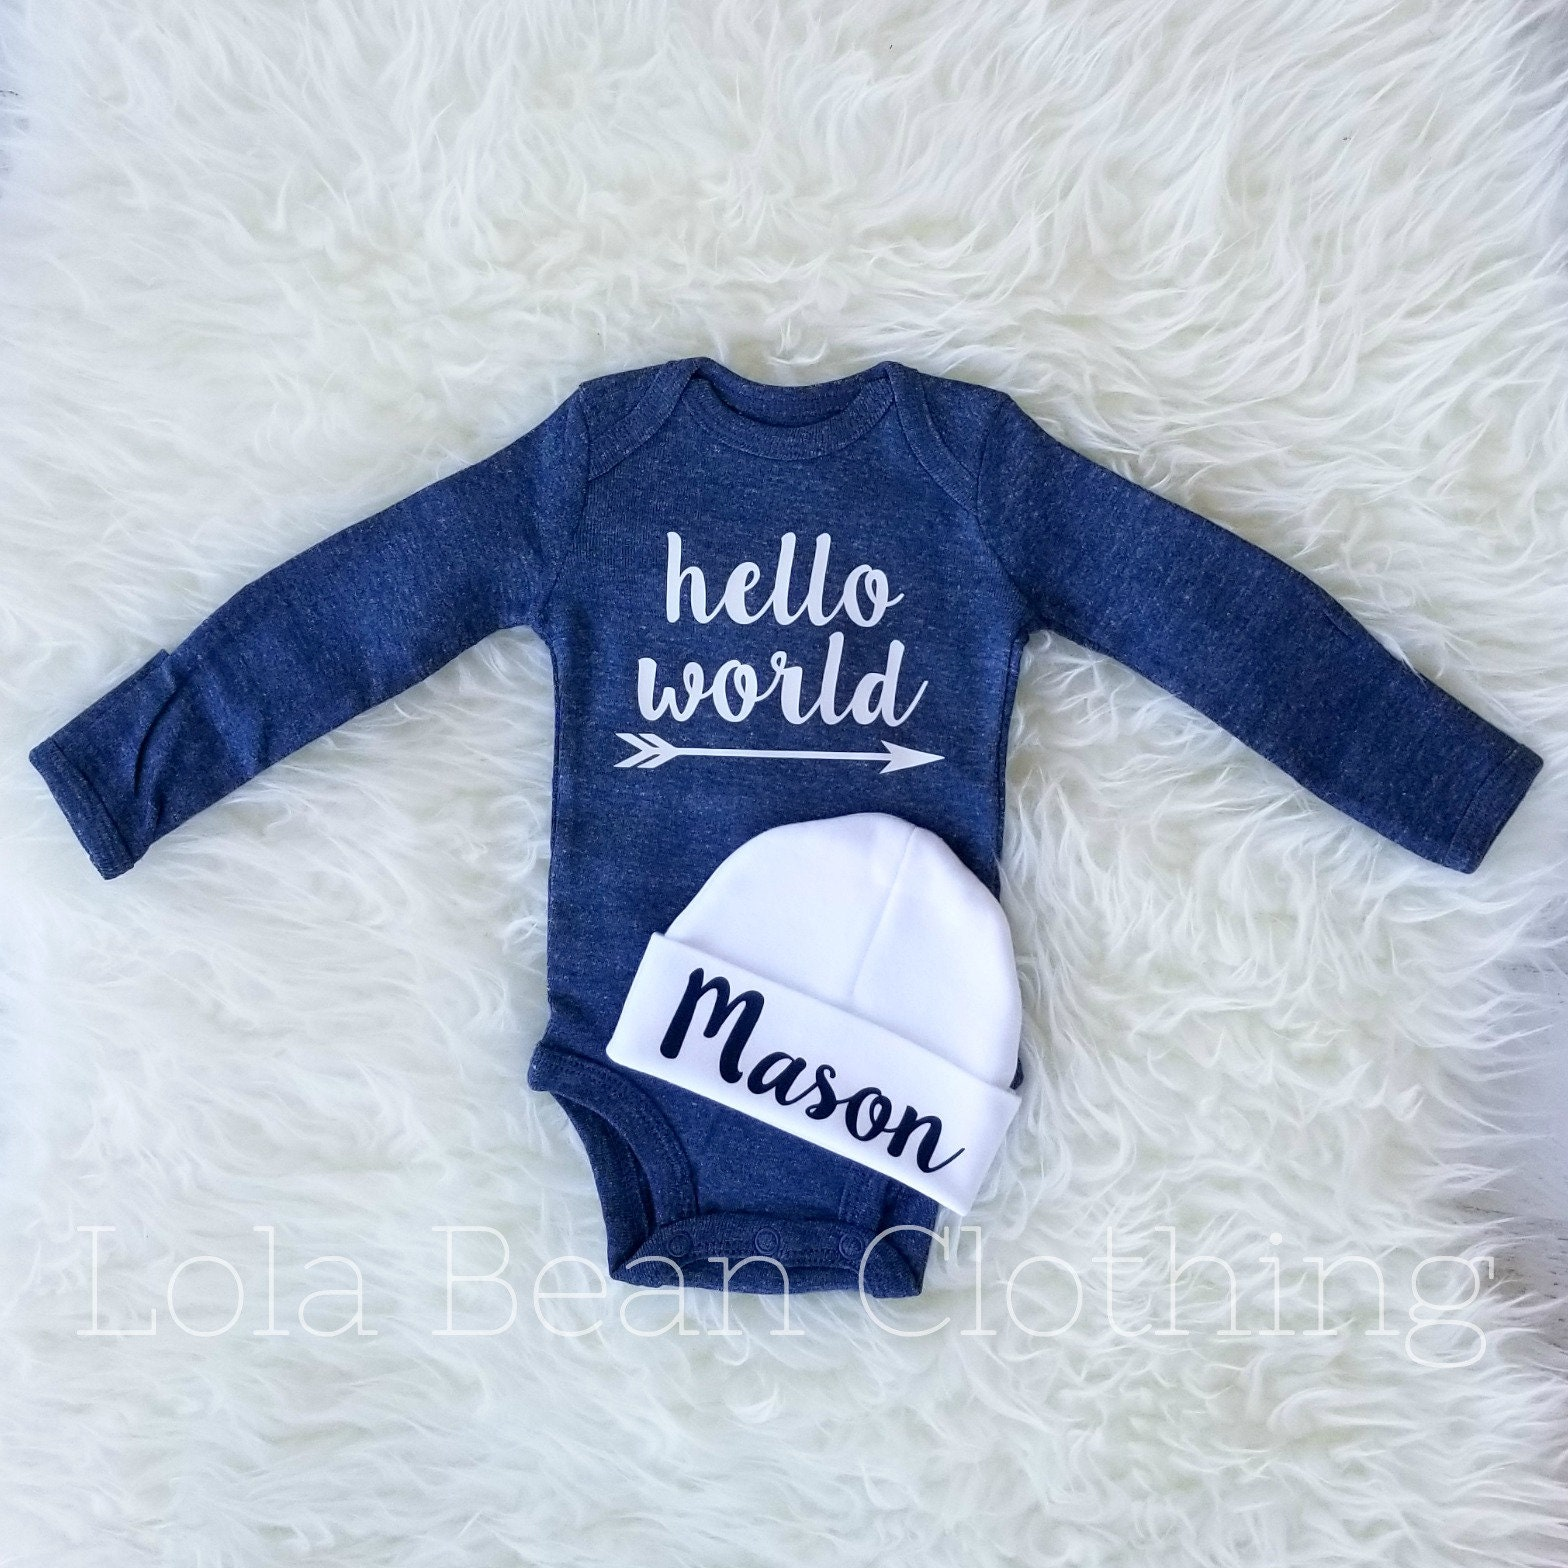 a13cbe408 Baby Boy, Baby Boy Coming Home Outfit, Hello World Outfit, Baby ...